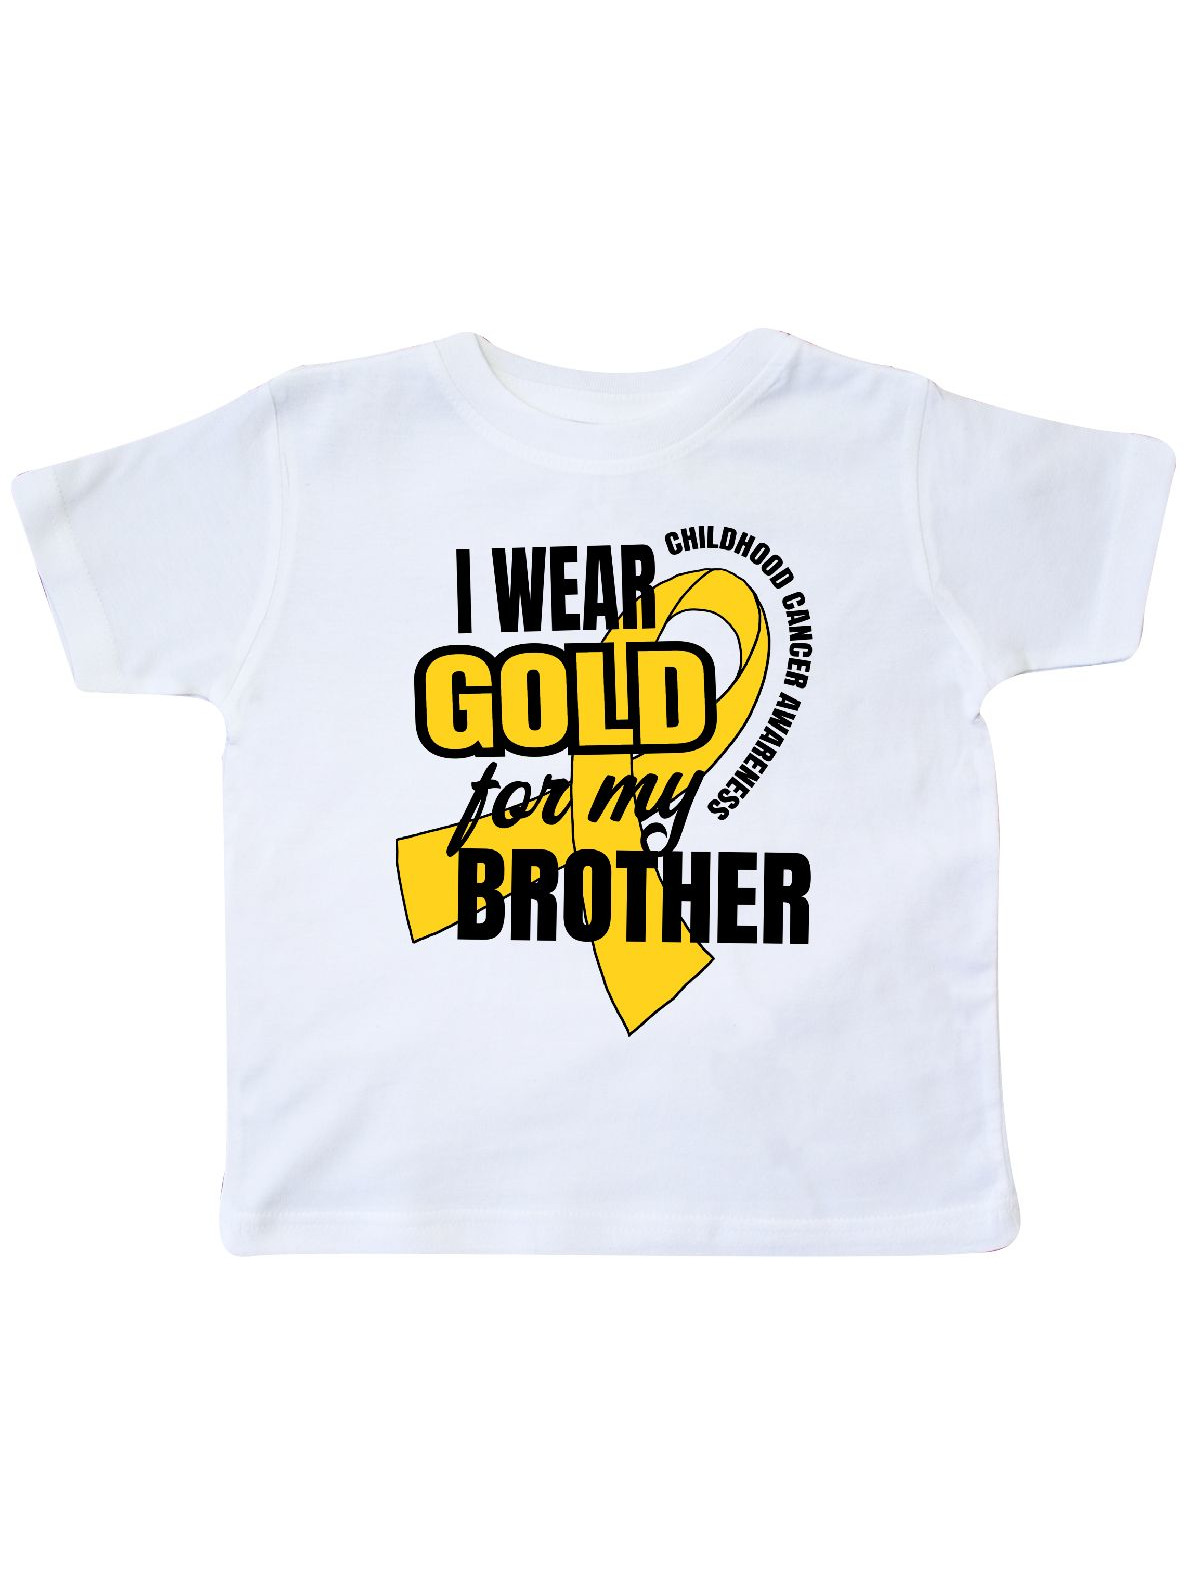 I Wear Gold For My Brother Childhood Cancer Awareness Toddler T-Shirt